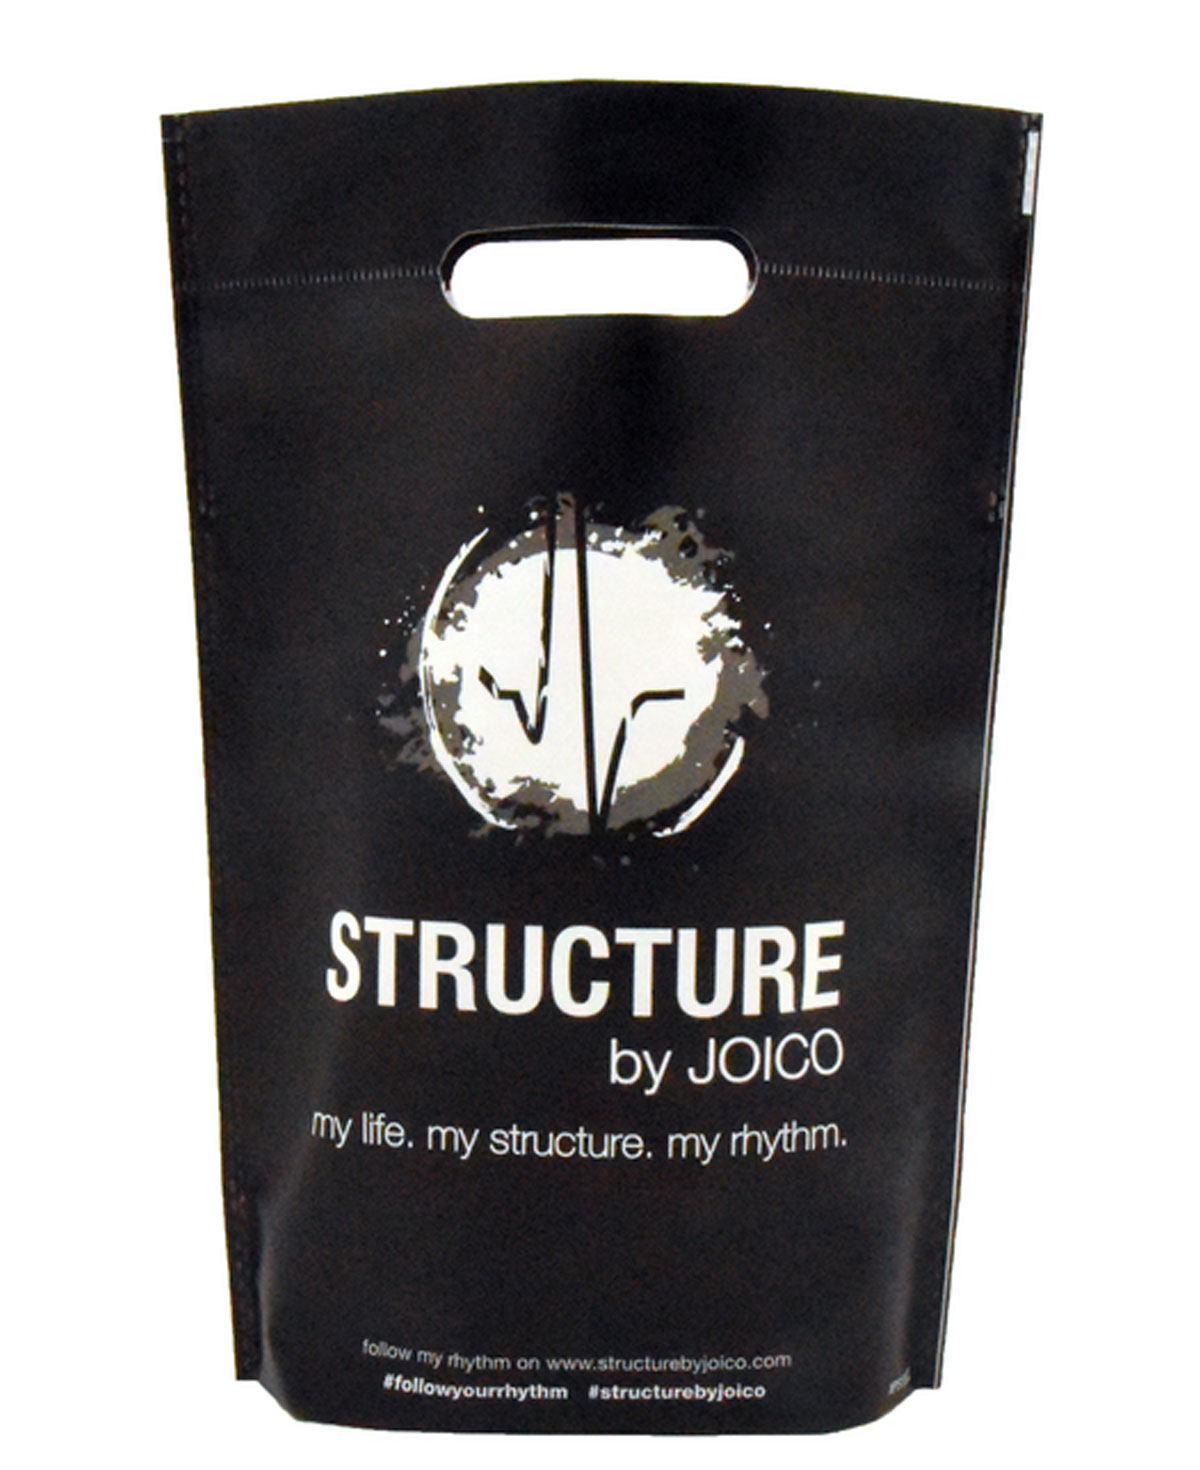 Joico Structure Re-usable Bag